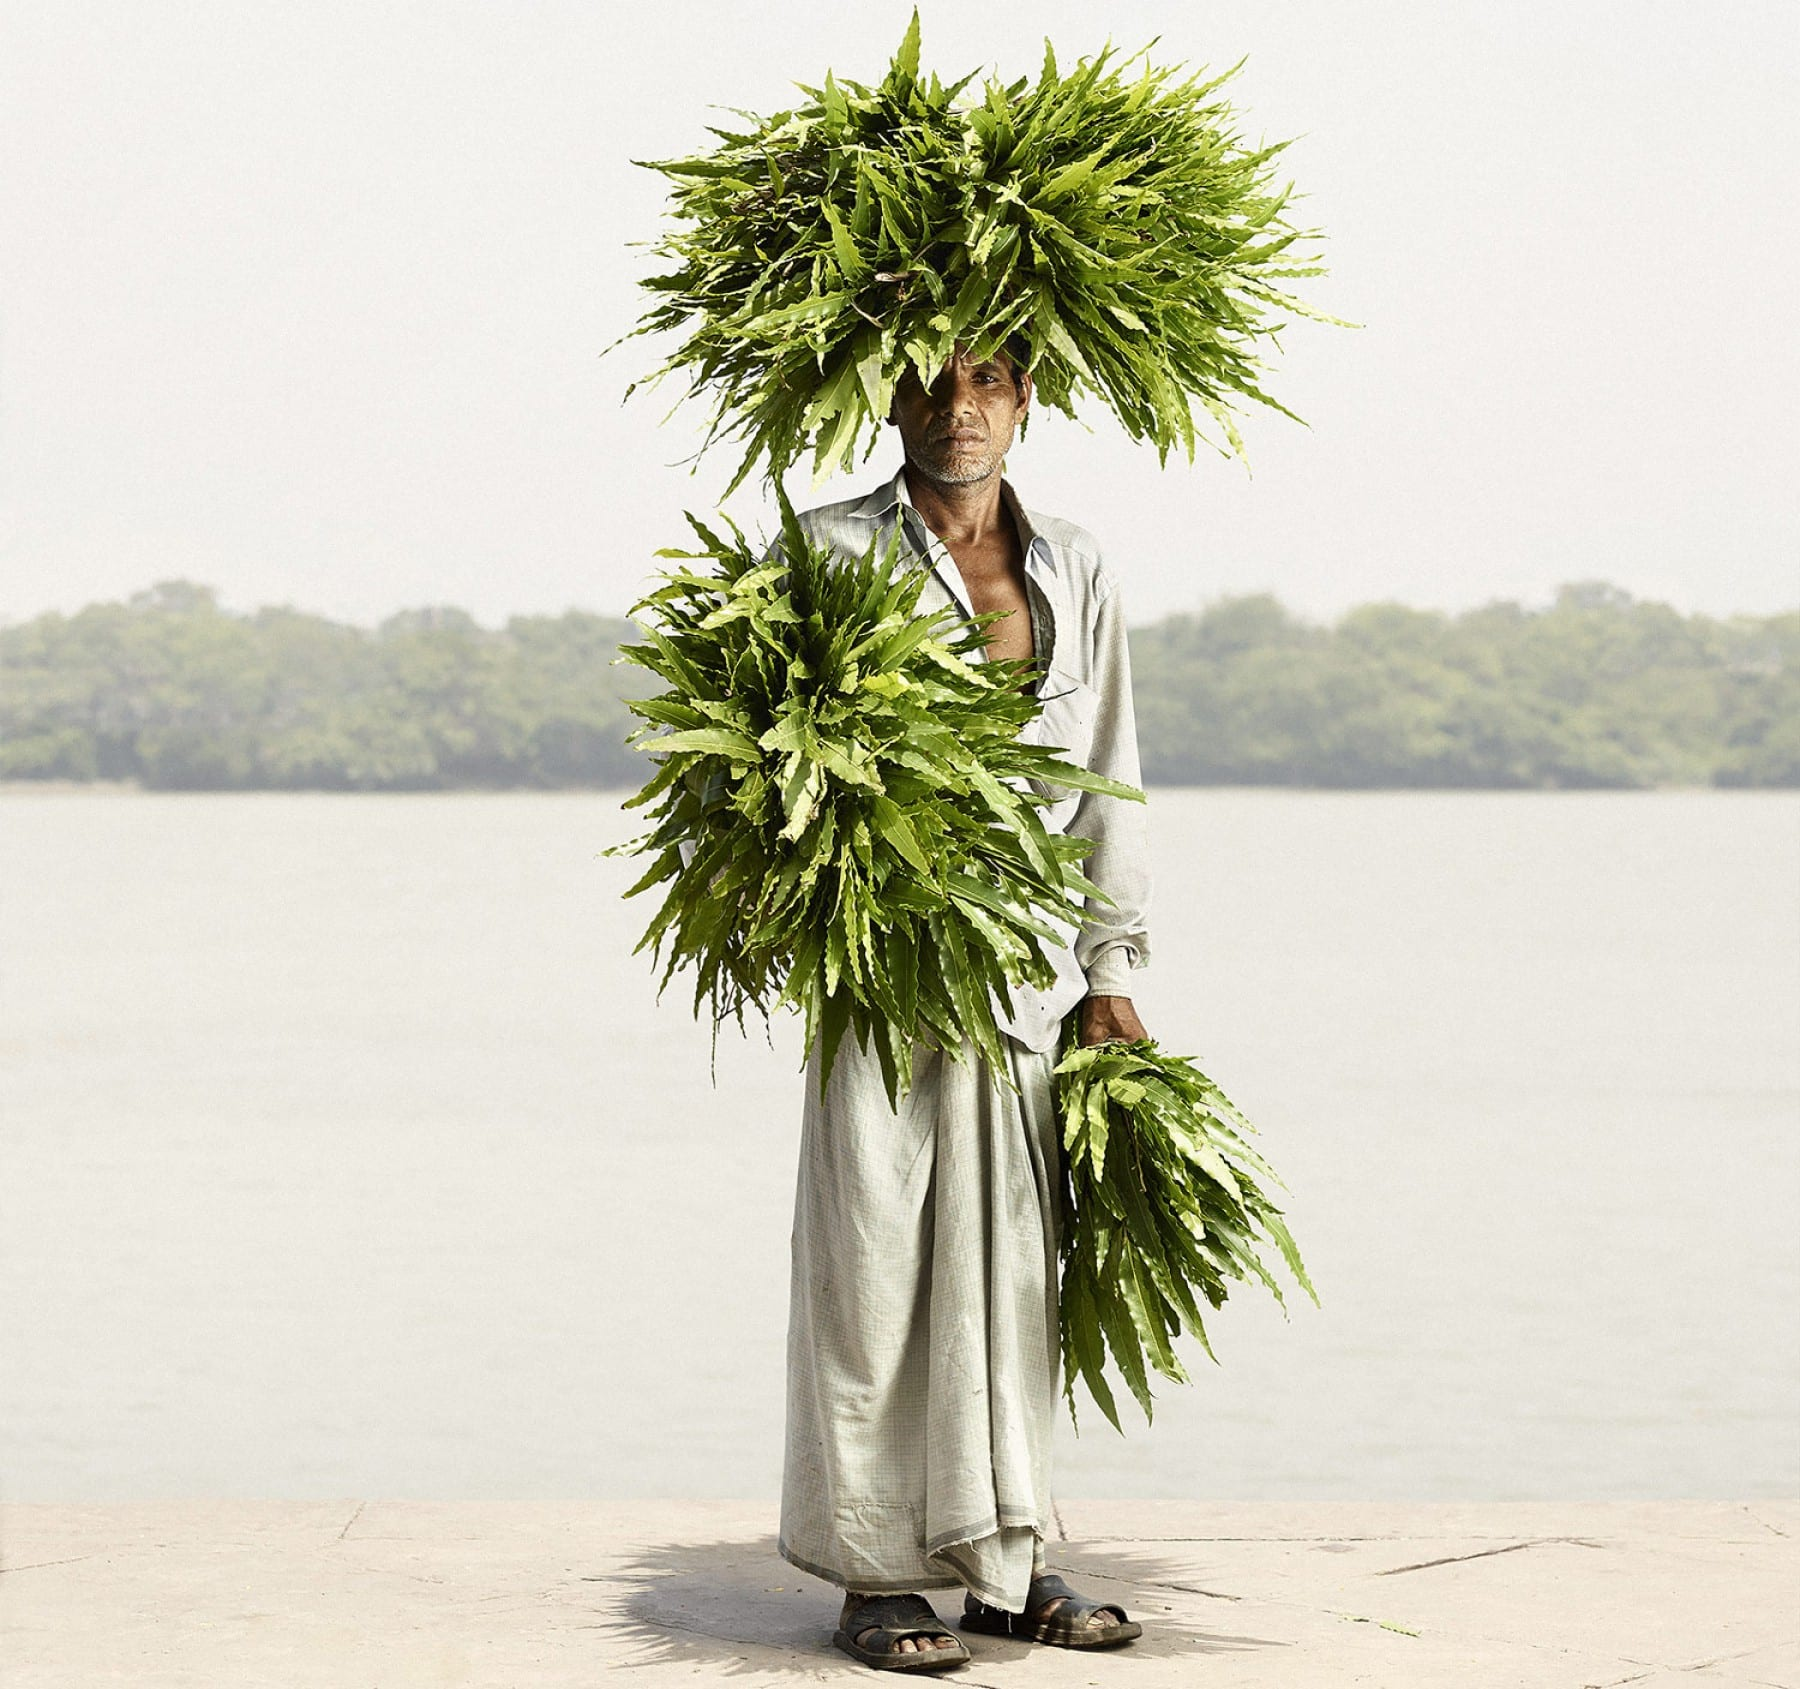 Portrait photography by Ken Hermann, Odhir Gayen with Devdar Leaves